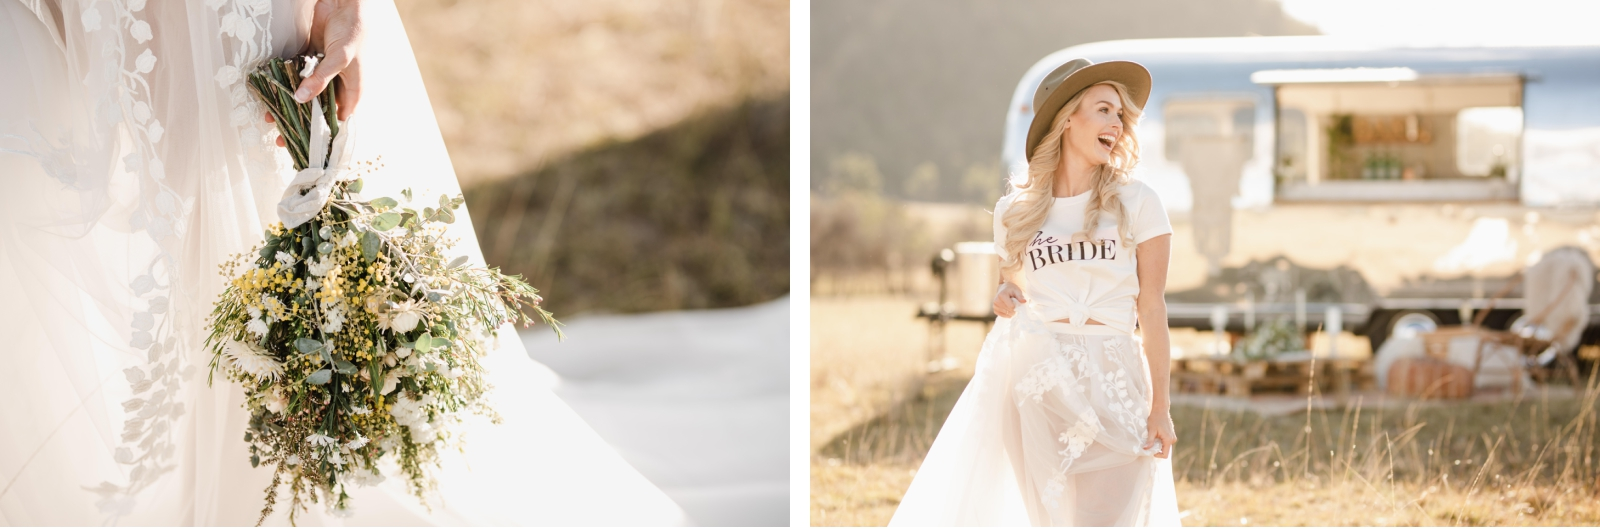 hunter-valley-wedding-planner-styled-shoot-the-airstream-social-broke-nsw-5